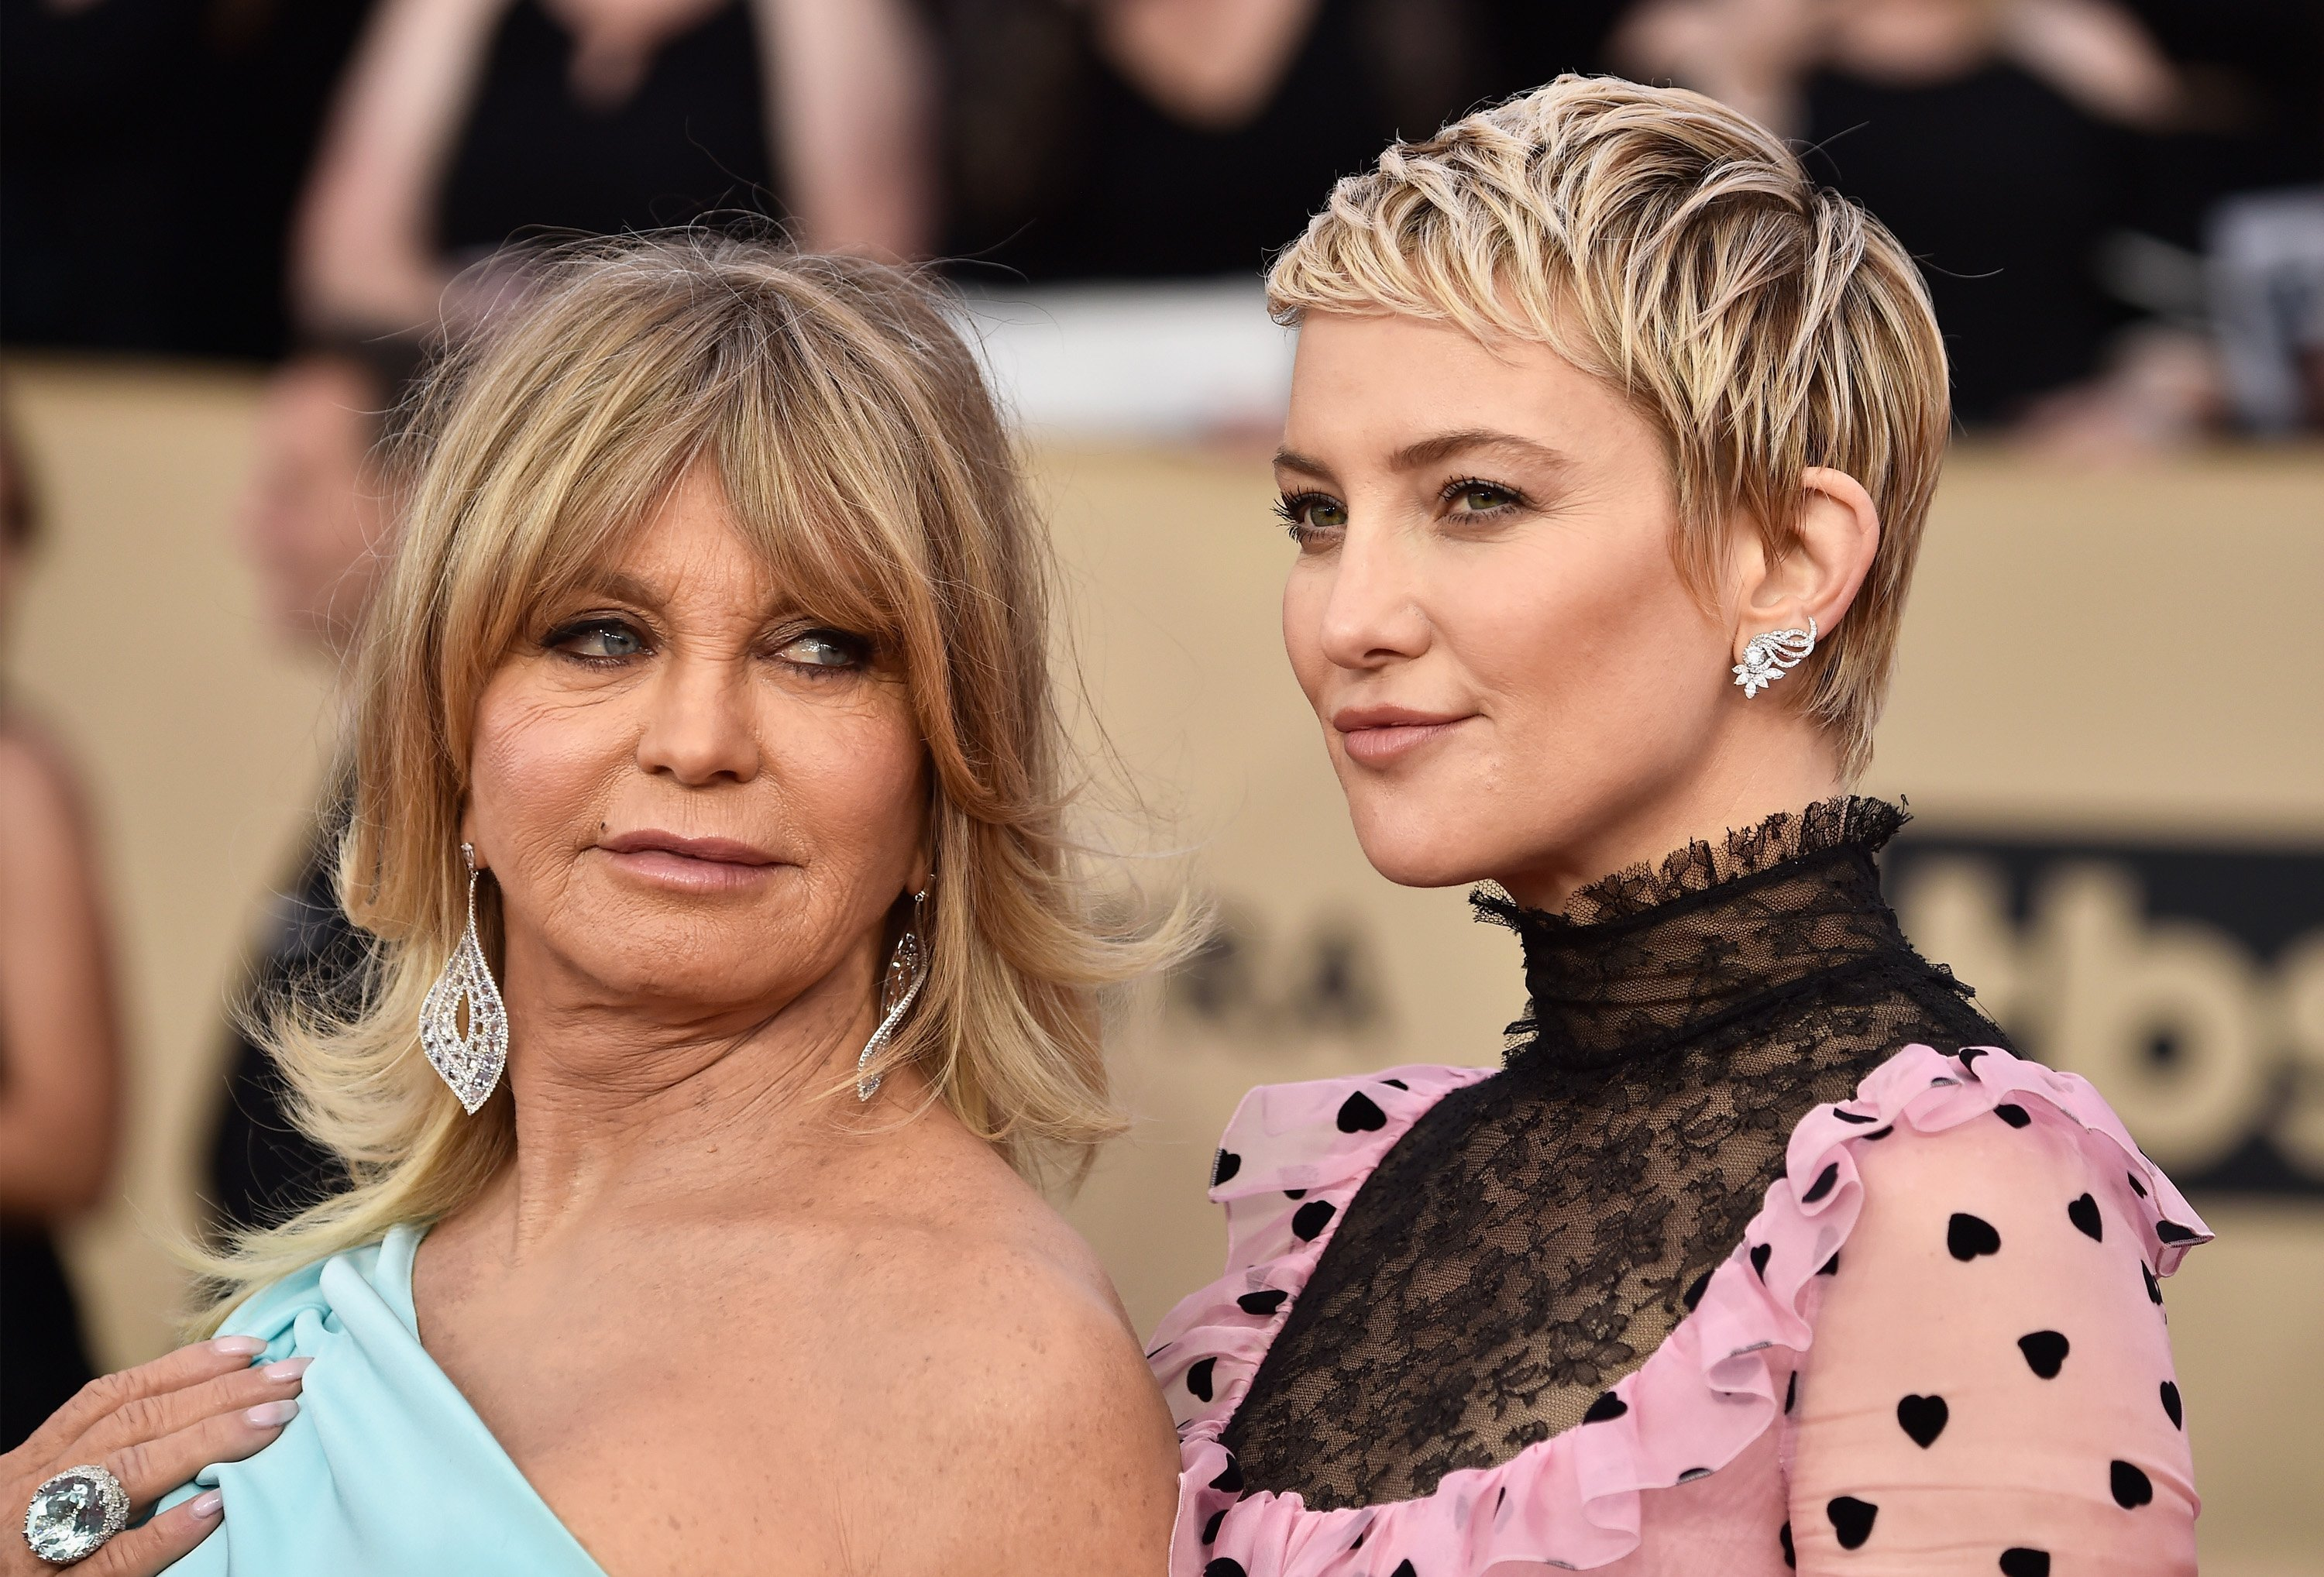 Goldie Hawn and Kate Hudson attend the Annual Screen Actor's Guild Awards in Los Angeles, California on January 21, 2018 | Photo: Getty Images